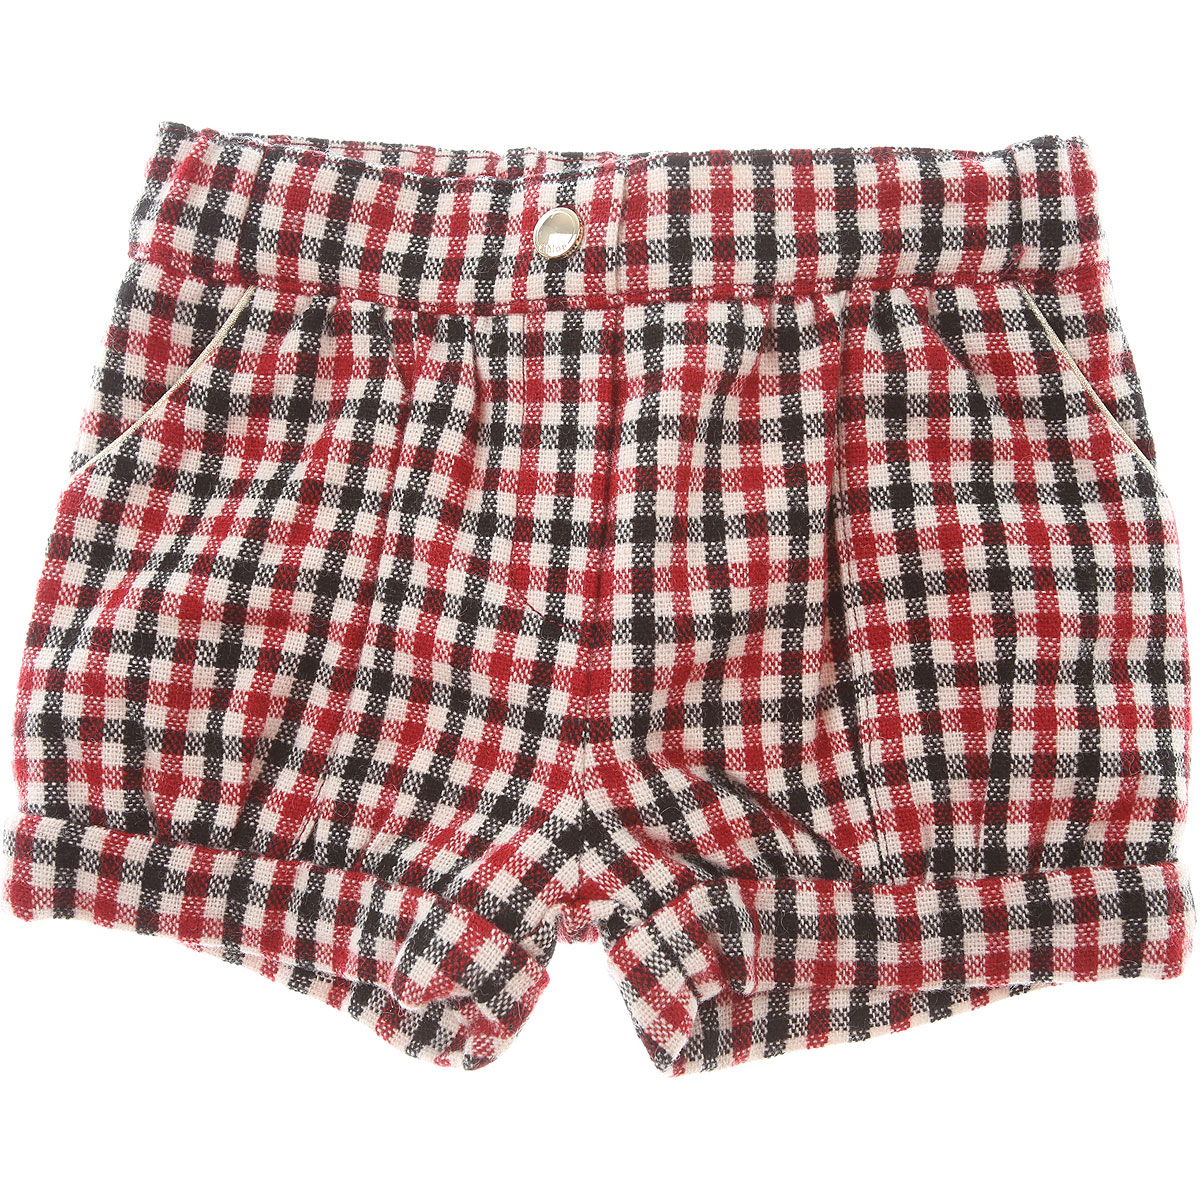 Chloe Baby Shorts for Girls On Sale, Red, Acrylic, 2019, 12M 6M 9M